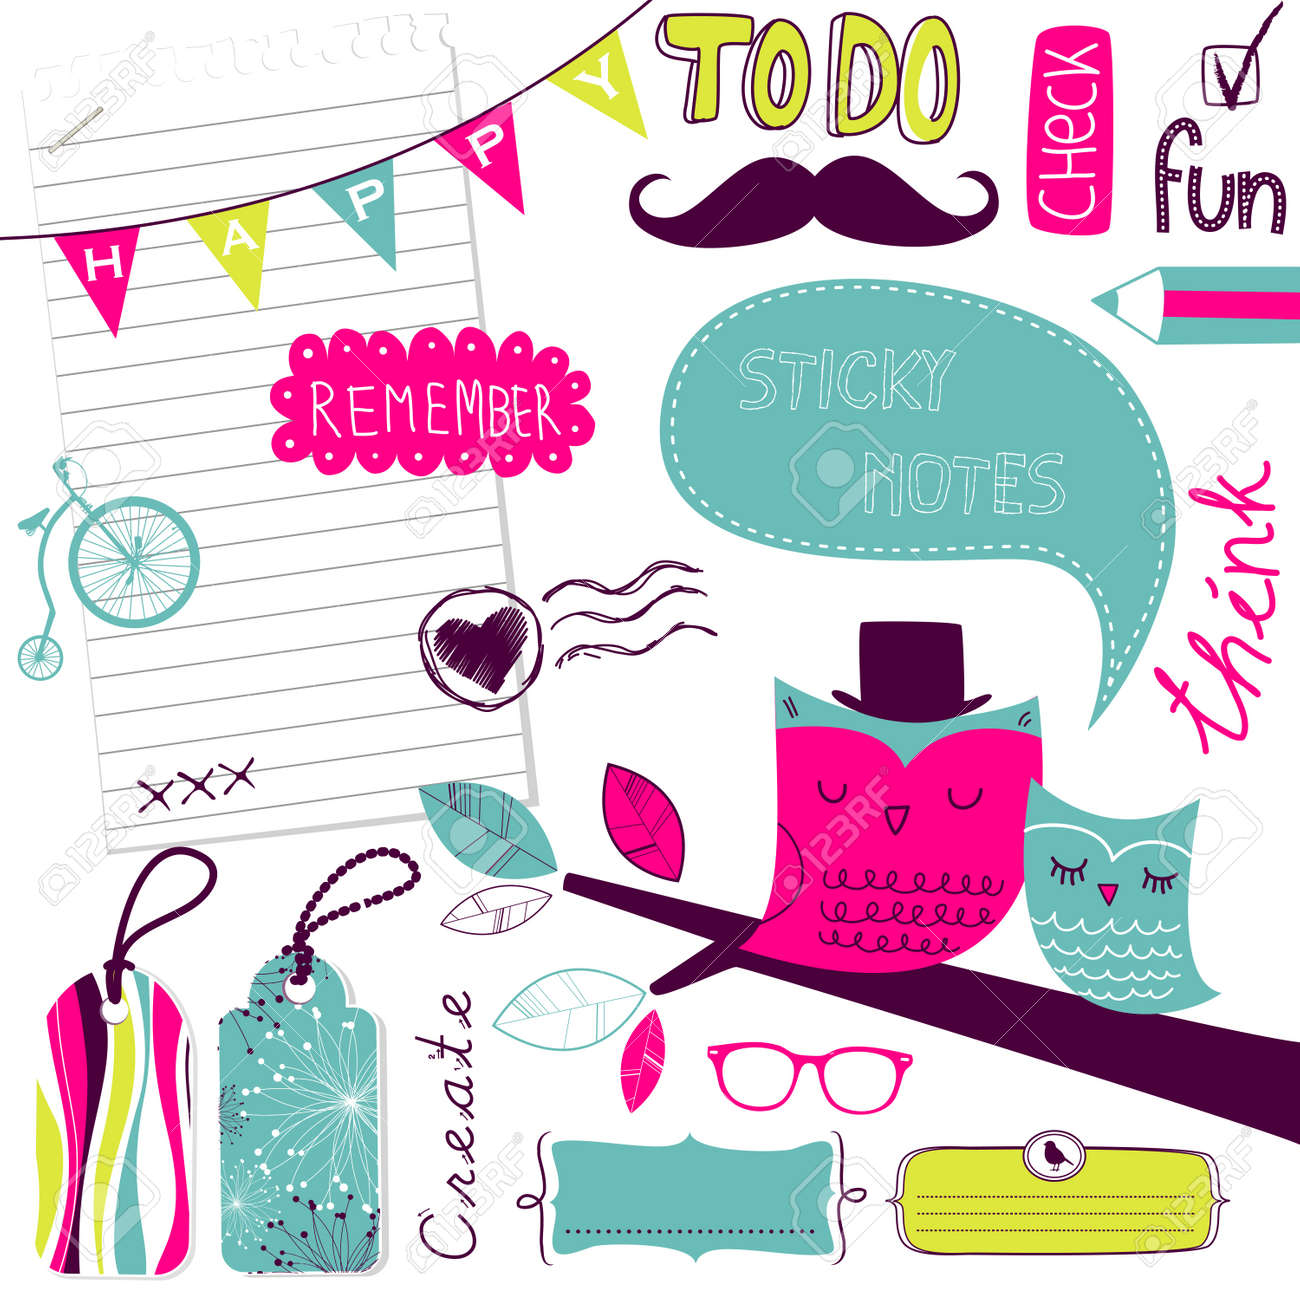 Cute scrapbook elements, sticky notes Stock Vector - 14255104